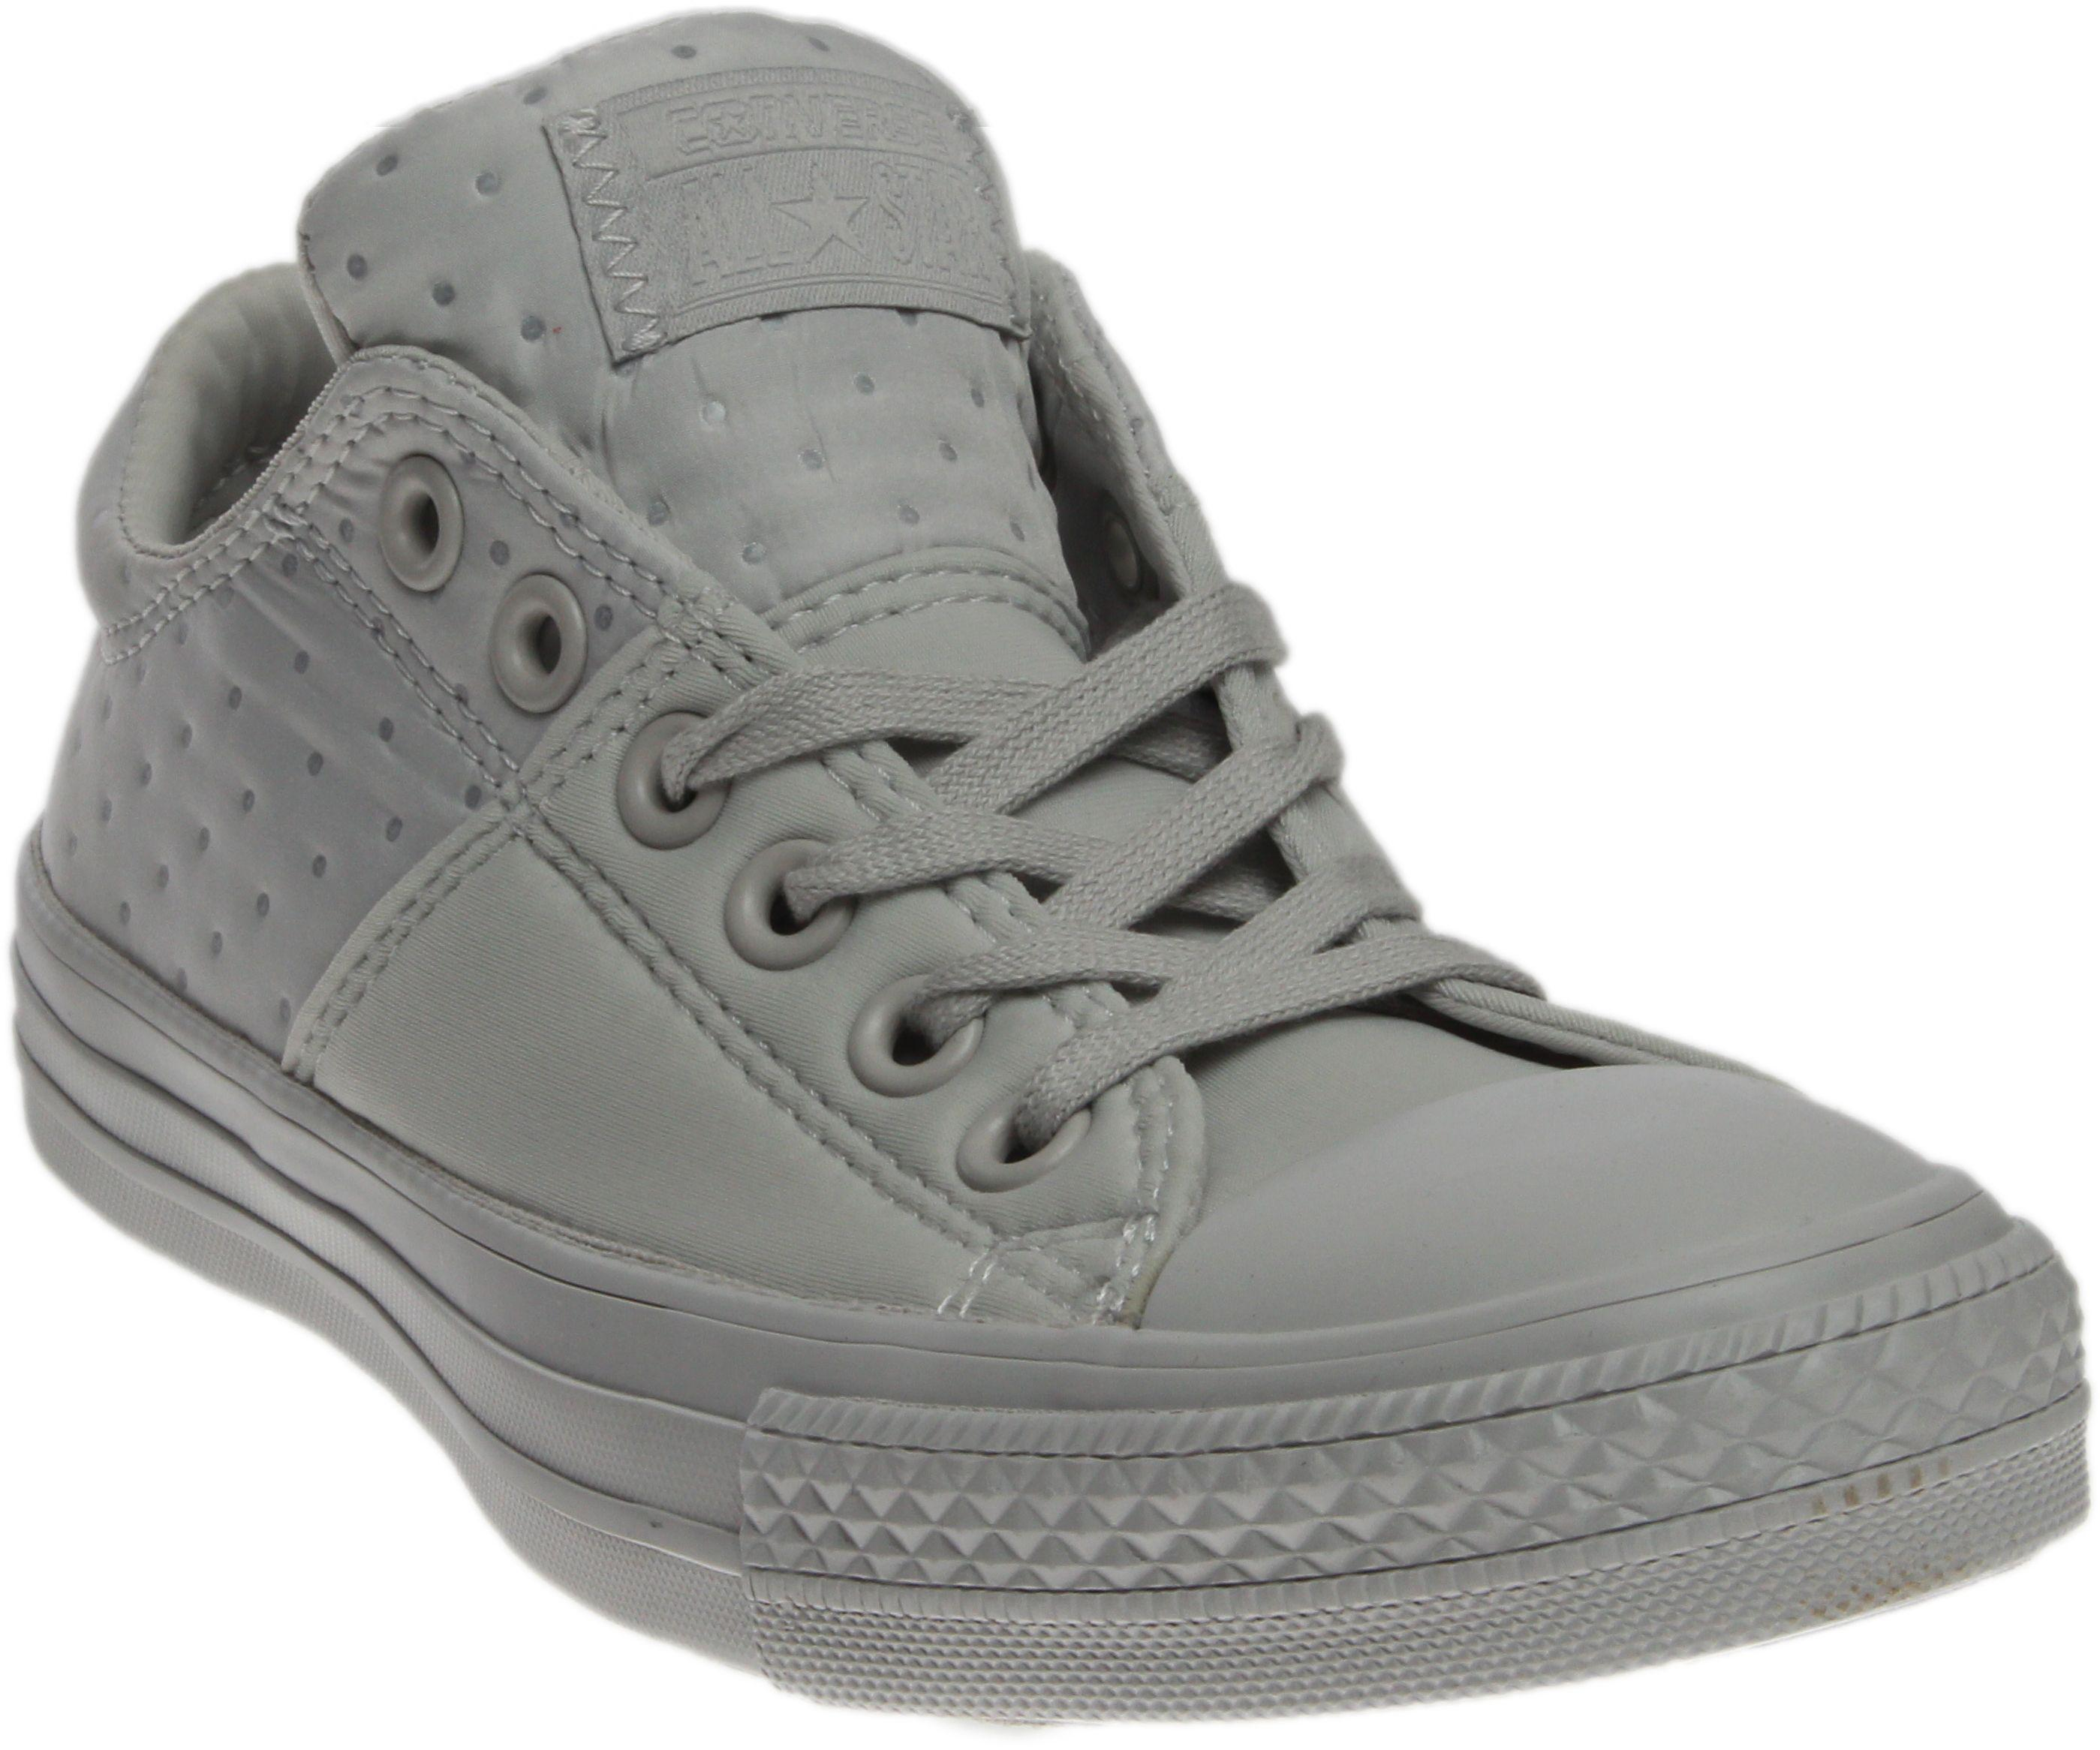 0f1ec6324150 Lyst - Converse Chuck Taylor All Star Madison Neoprene Mouse in ...